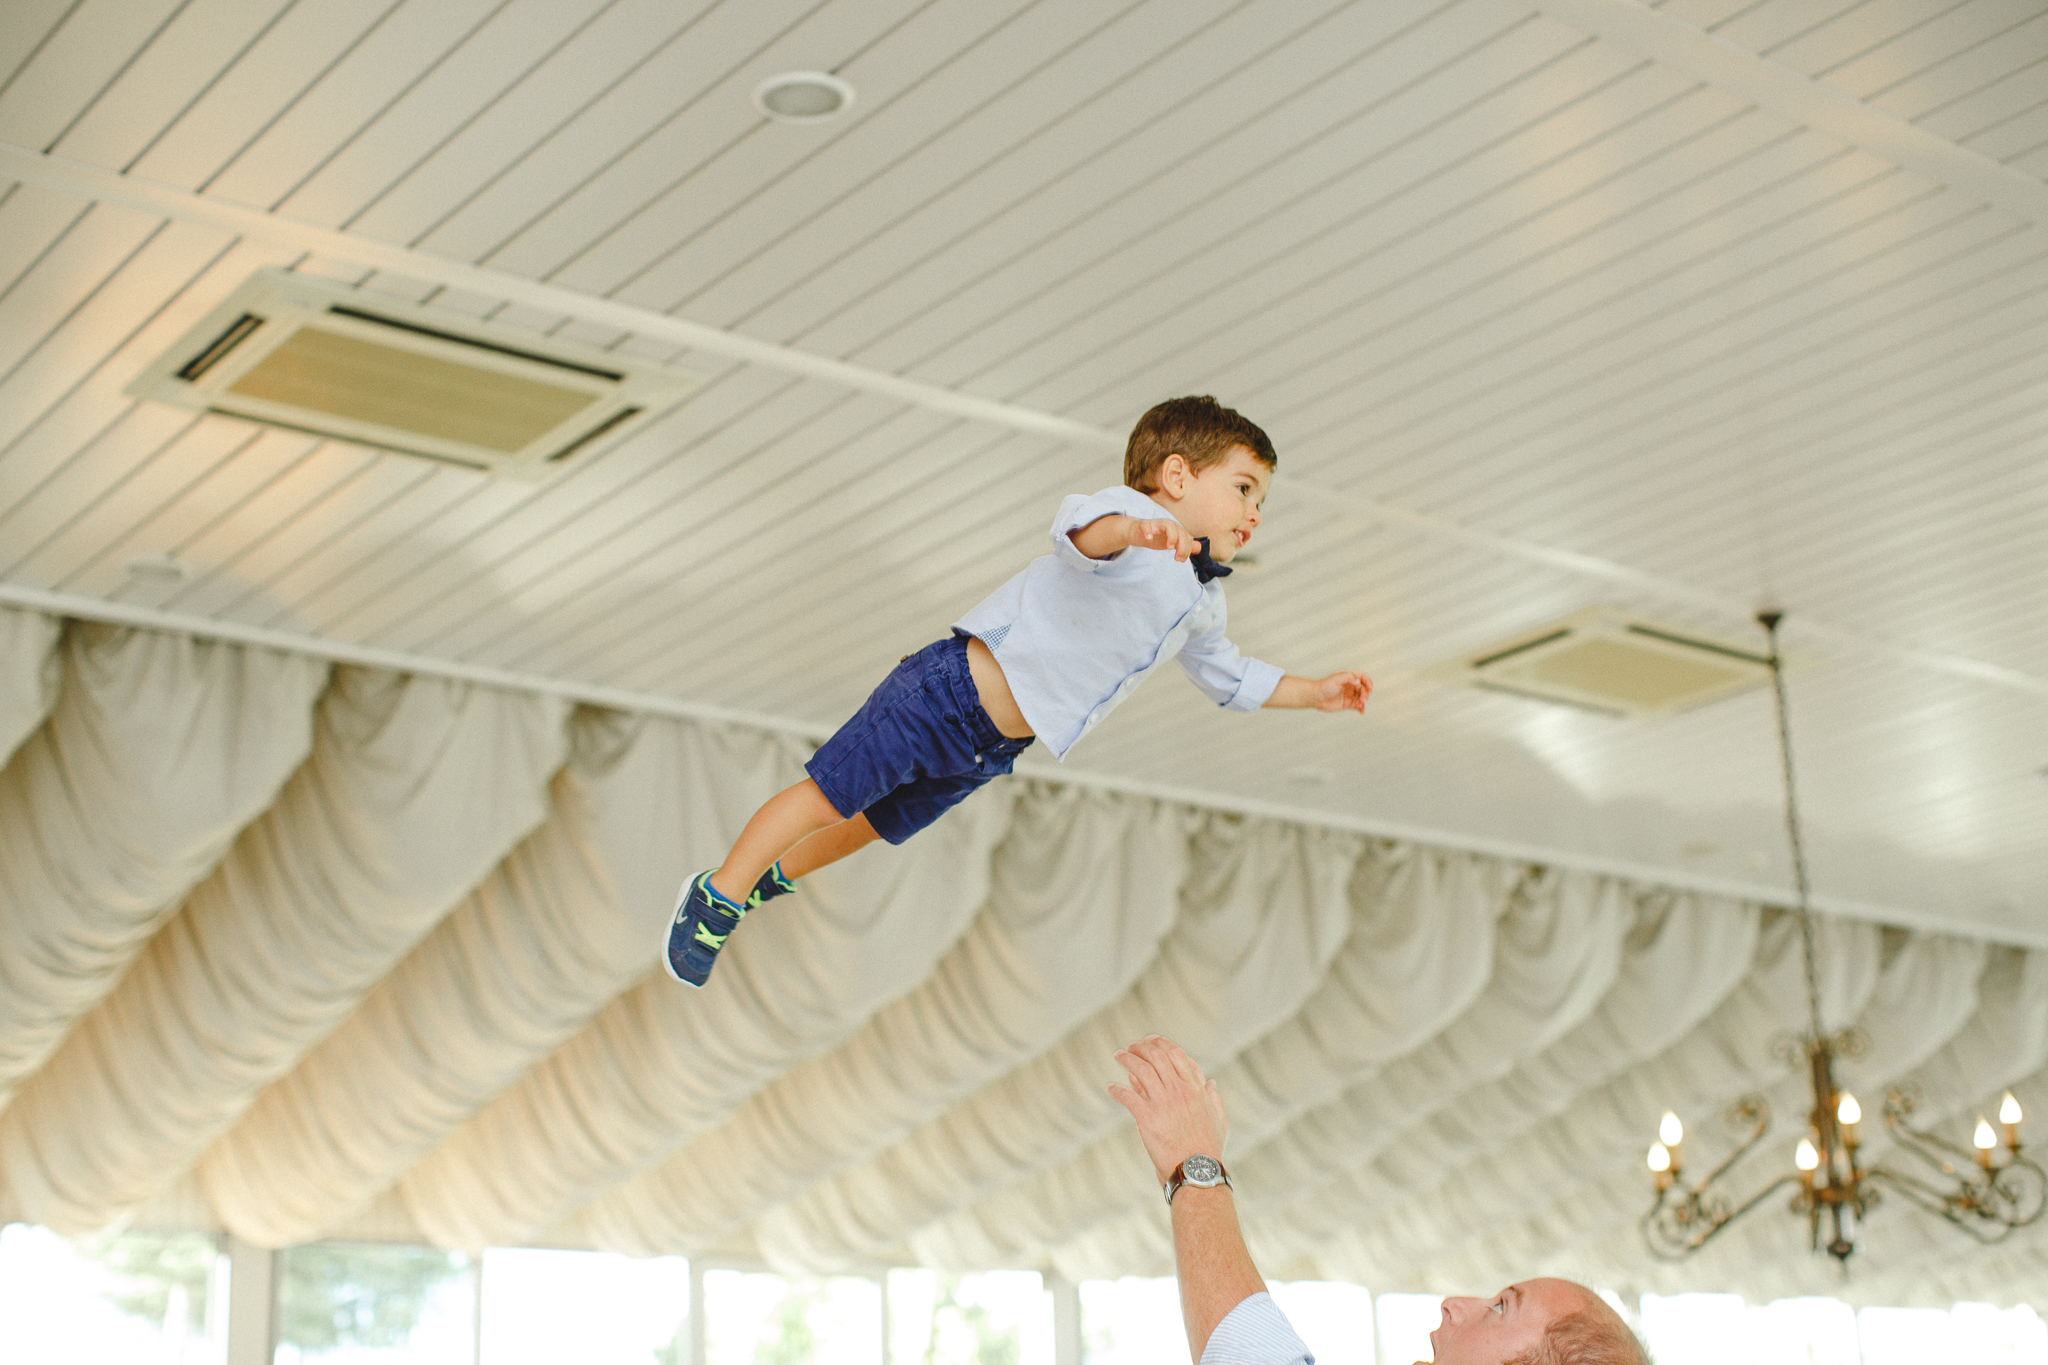 Young kid being thrown up in the air by his father for fun